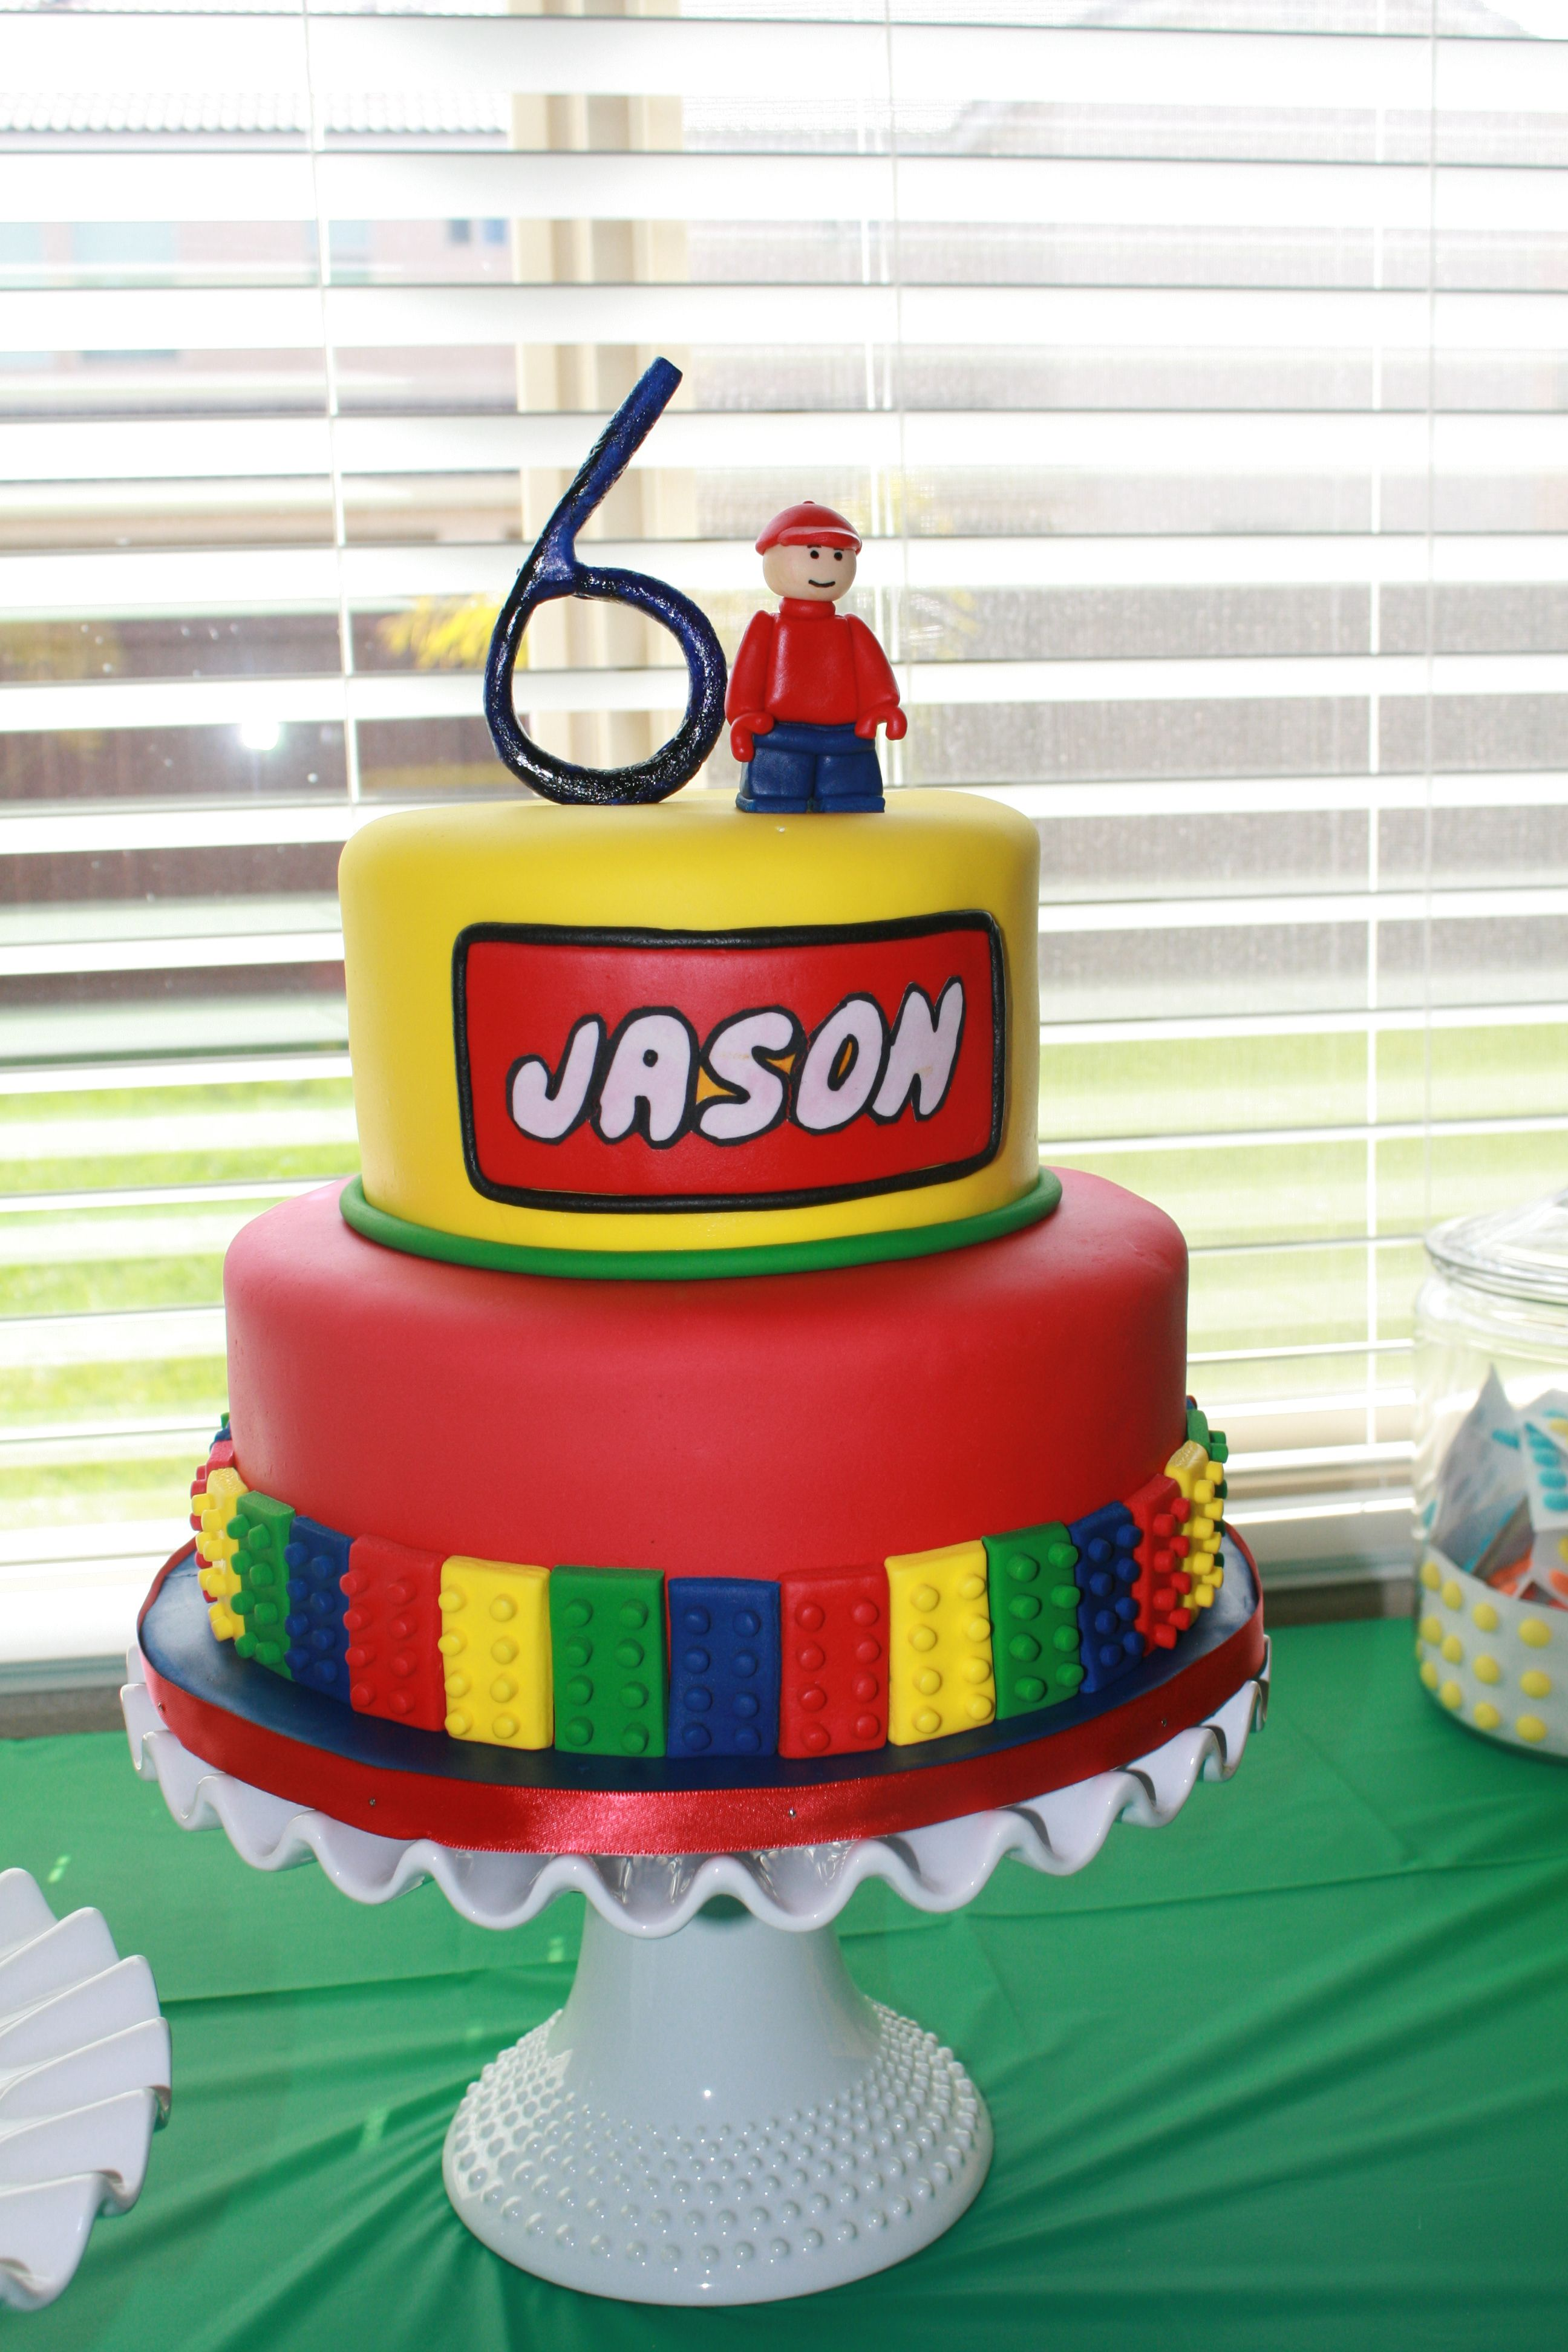 Tremendous Very Cool Lego Cake For A Little Boys Bday Party Lego Birthday Personalised Birthday Cards Cominlily Jamesorg